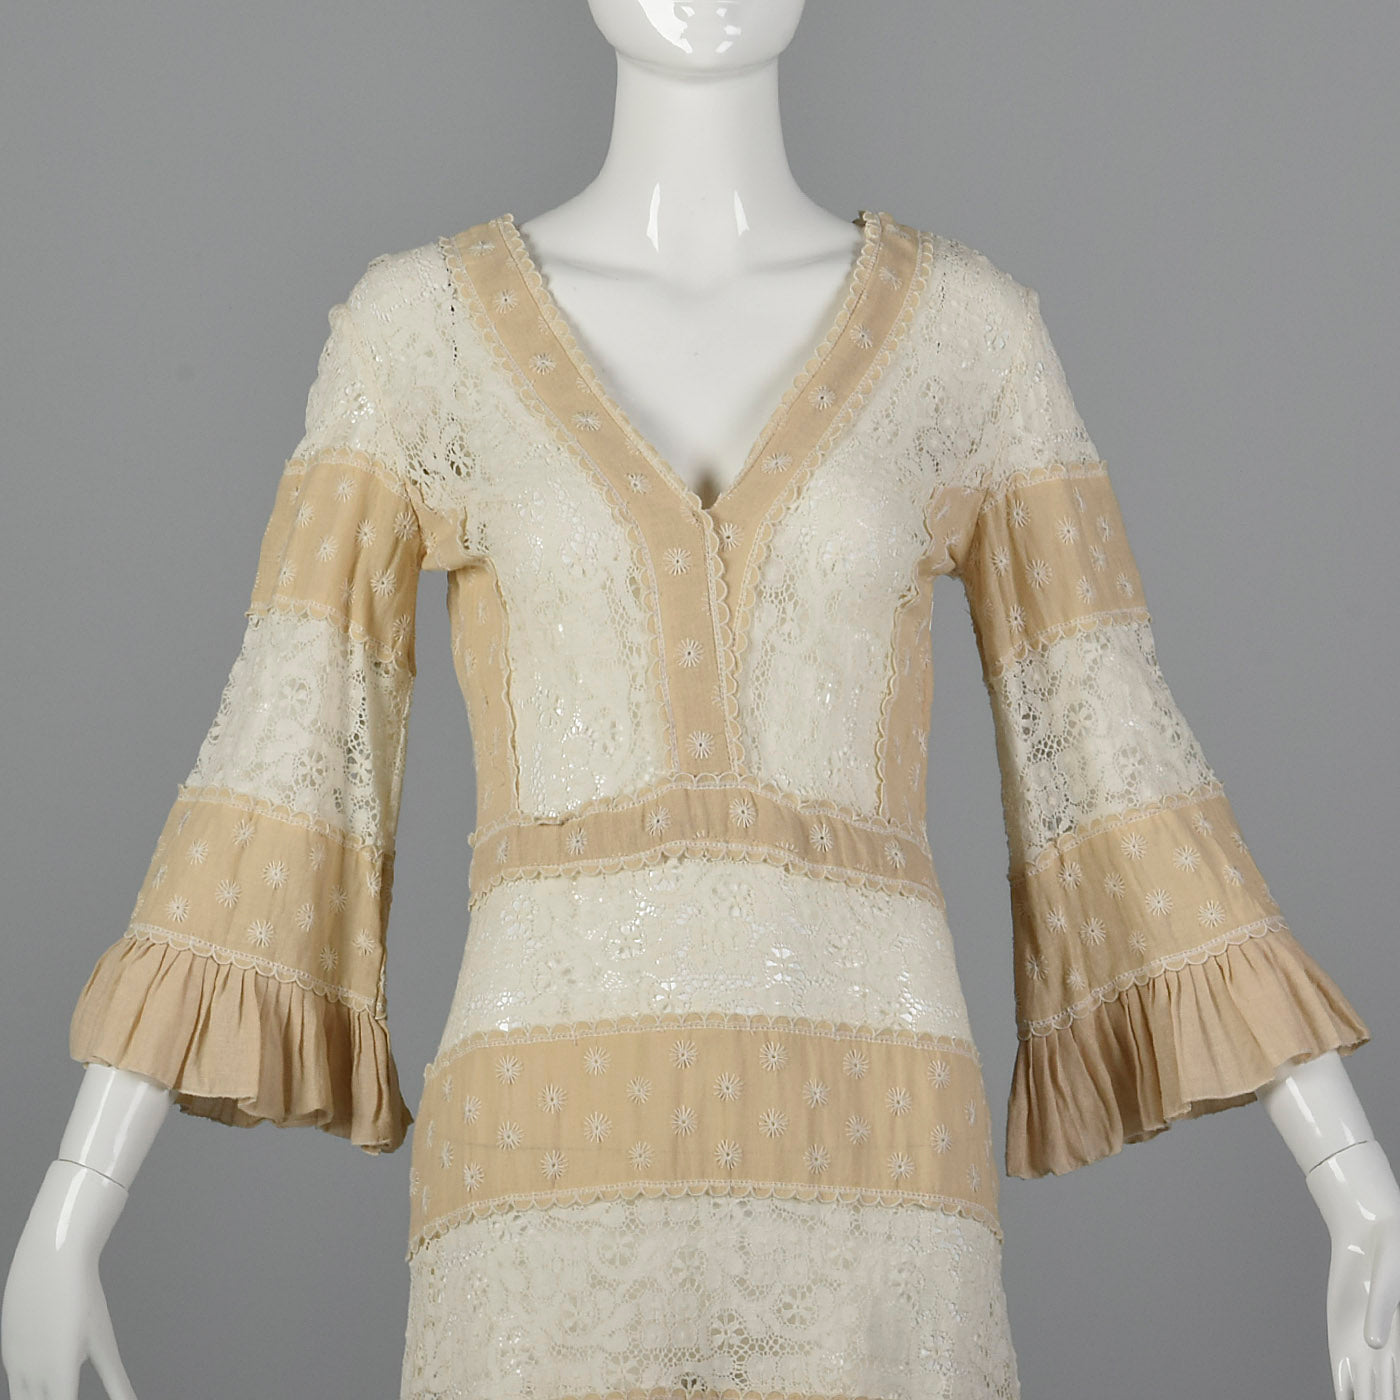 1970s Bohemian Dress with Sheer Lace Panels